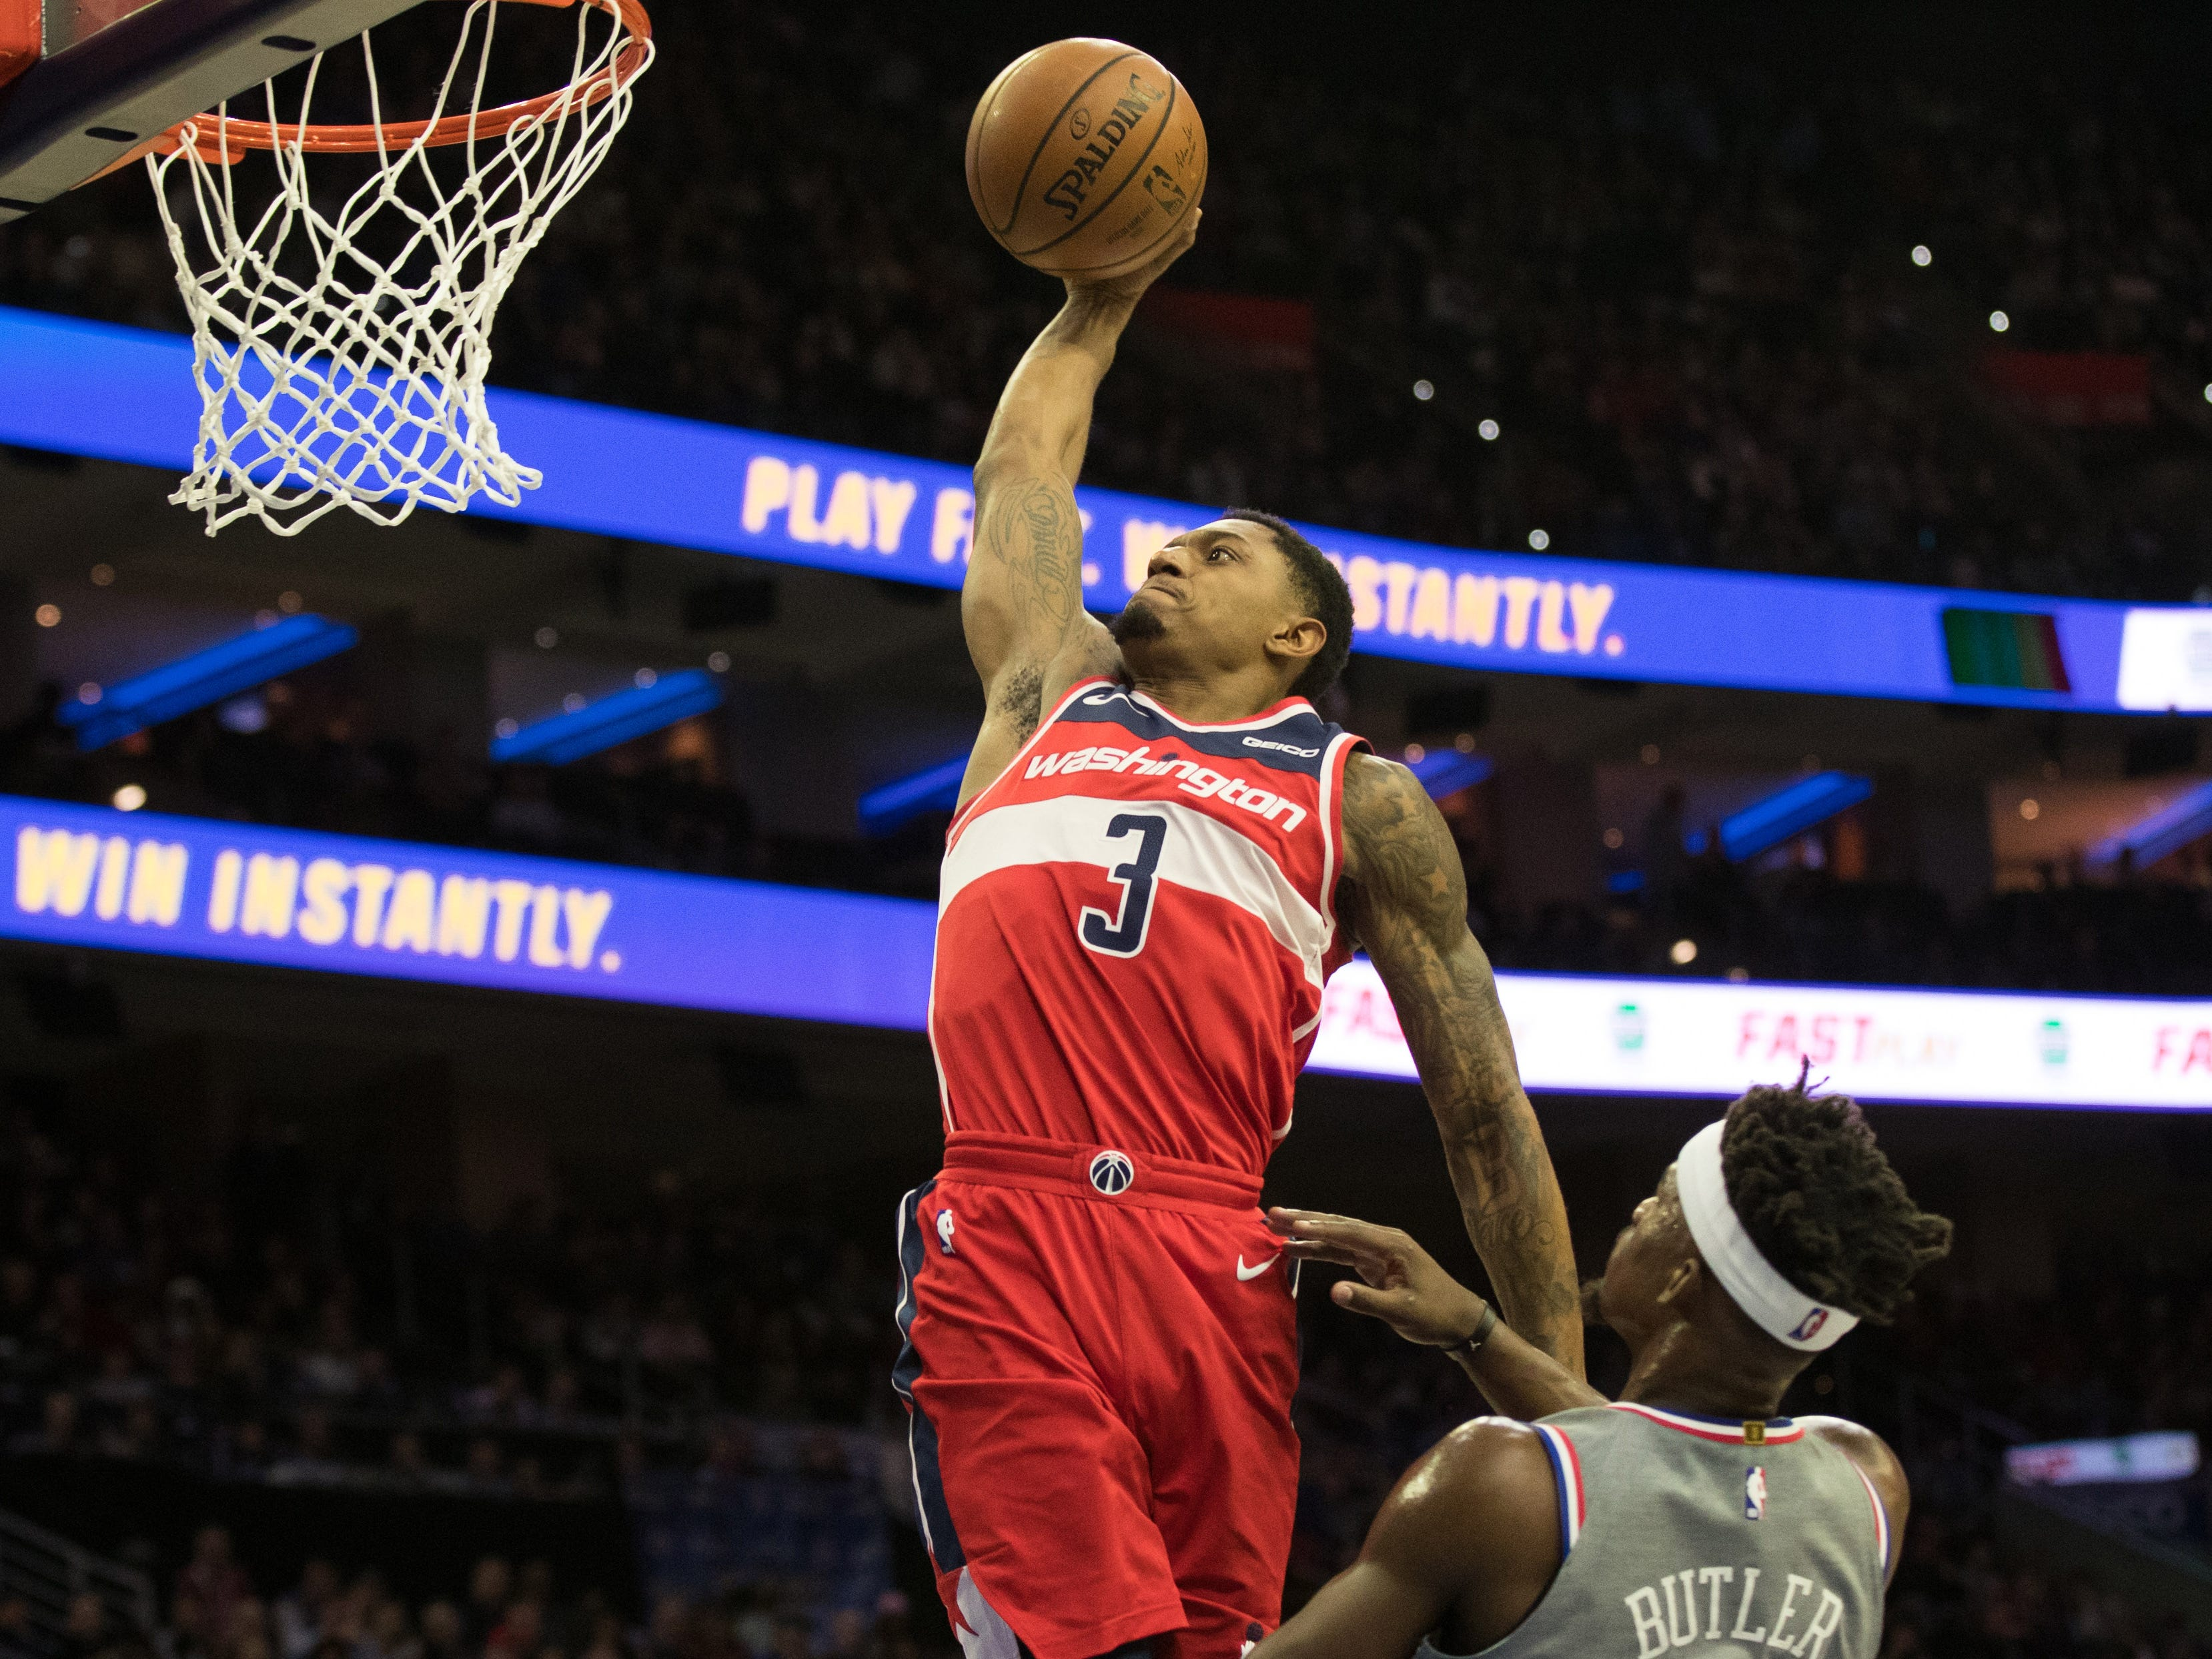 Nov. 30: Wizards guard Bradley Beal throws down a monster one-handed flush against the 76ers in Philadelphia.